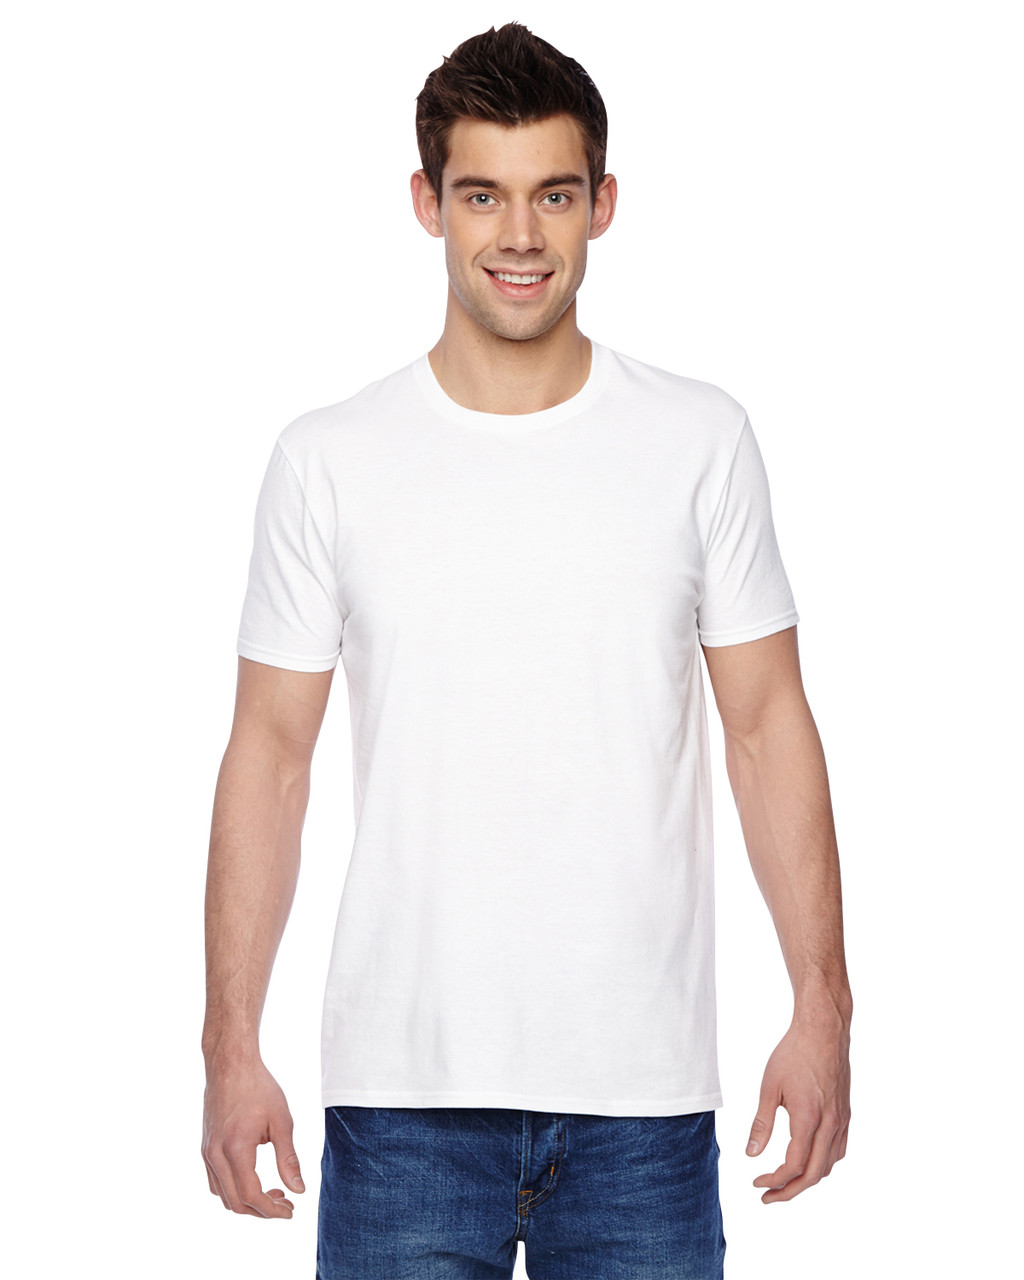 White - SF45R Fruit of the Loom Softspun Cotton T-Shirt | Blankclothing.ca